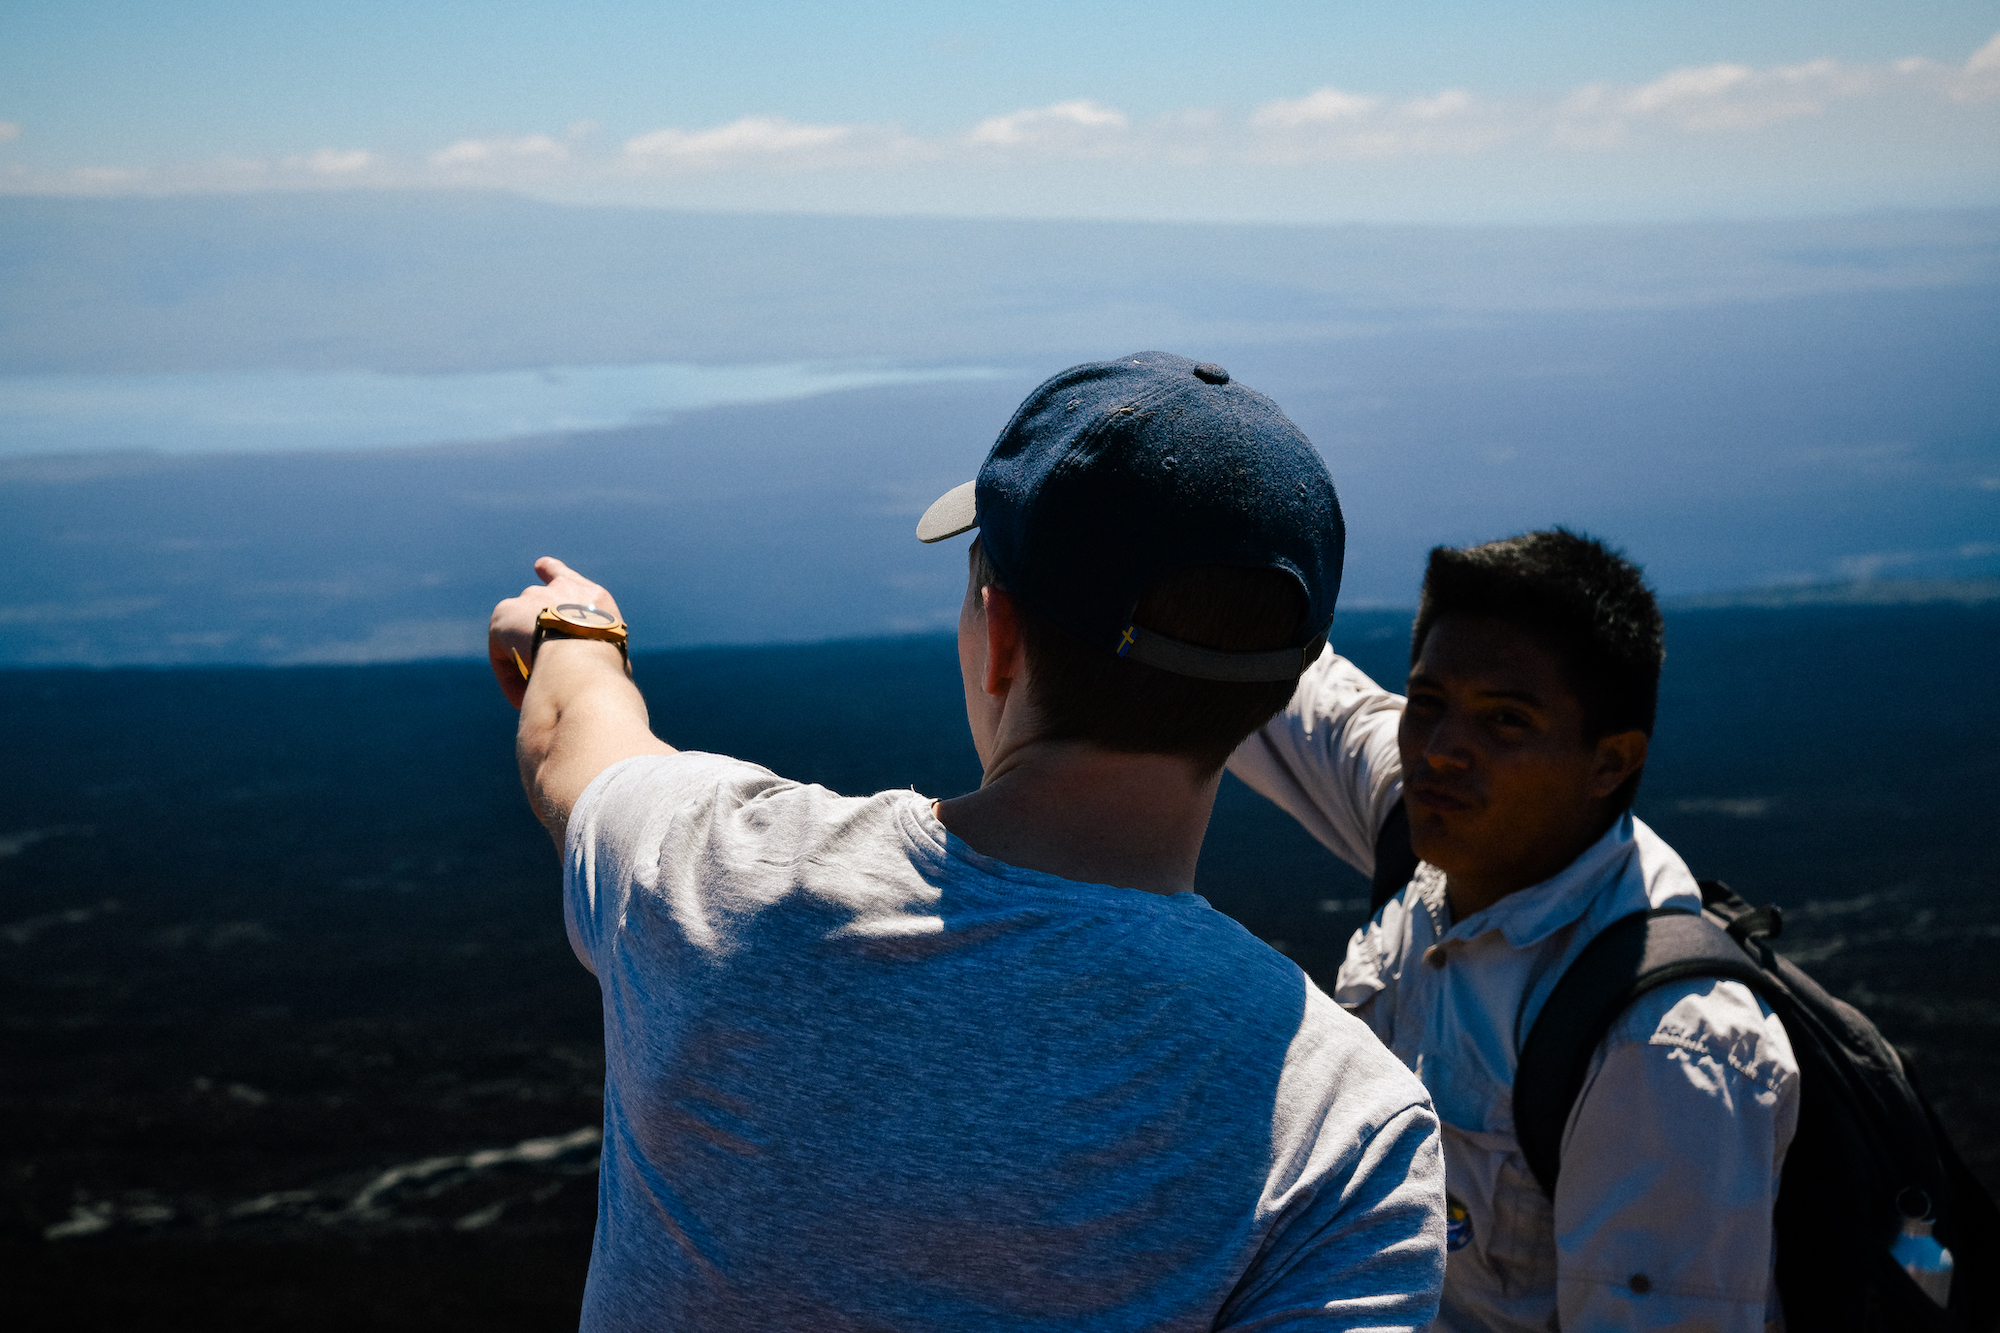 peter and our guide lookin out at some VOLCANOES